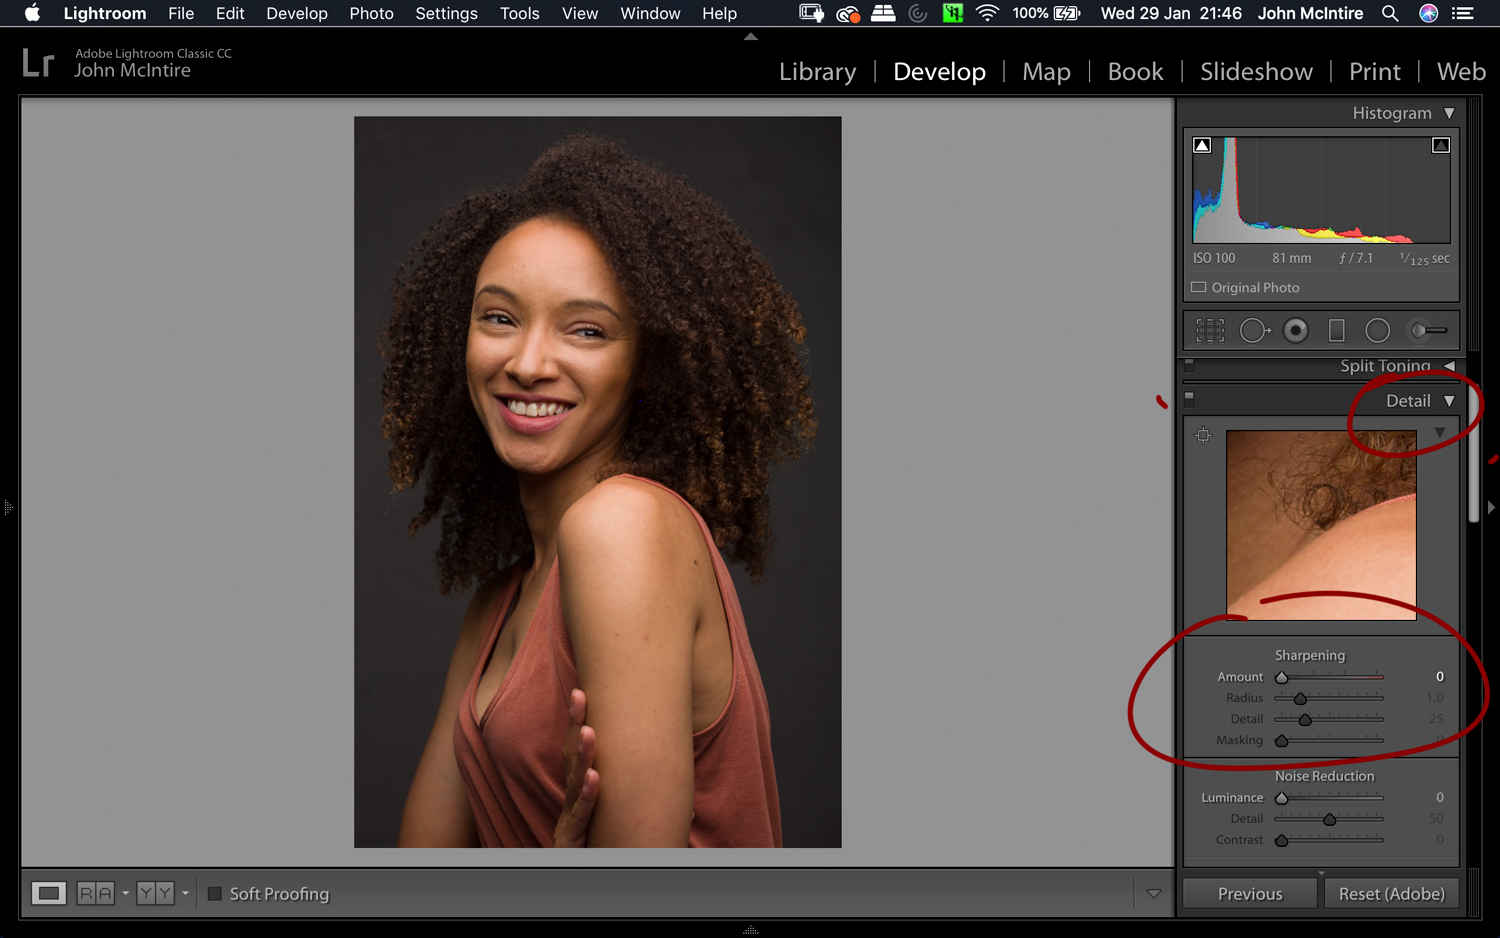 Things to do to every photo in Lightroom - Sharpness